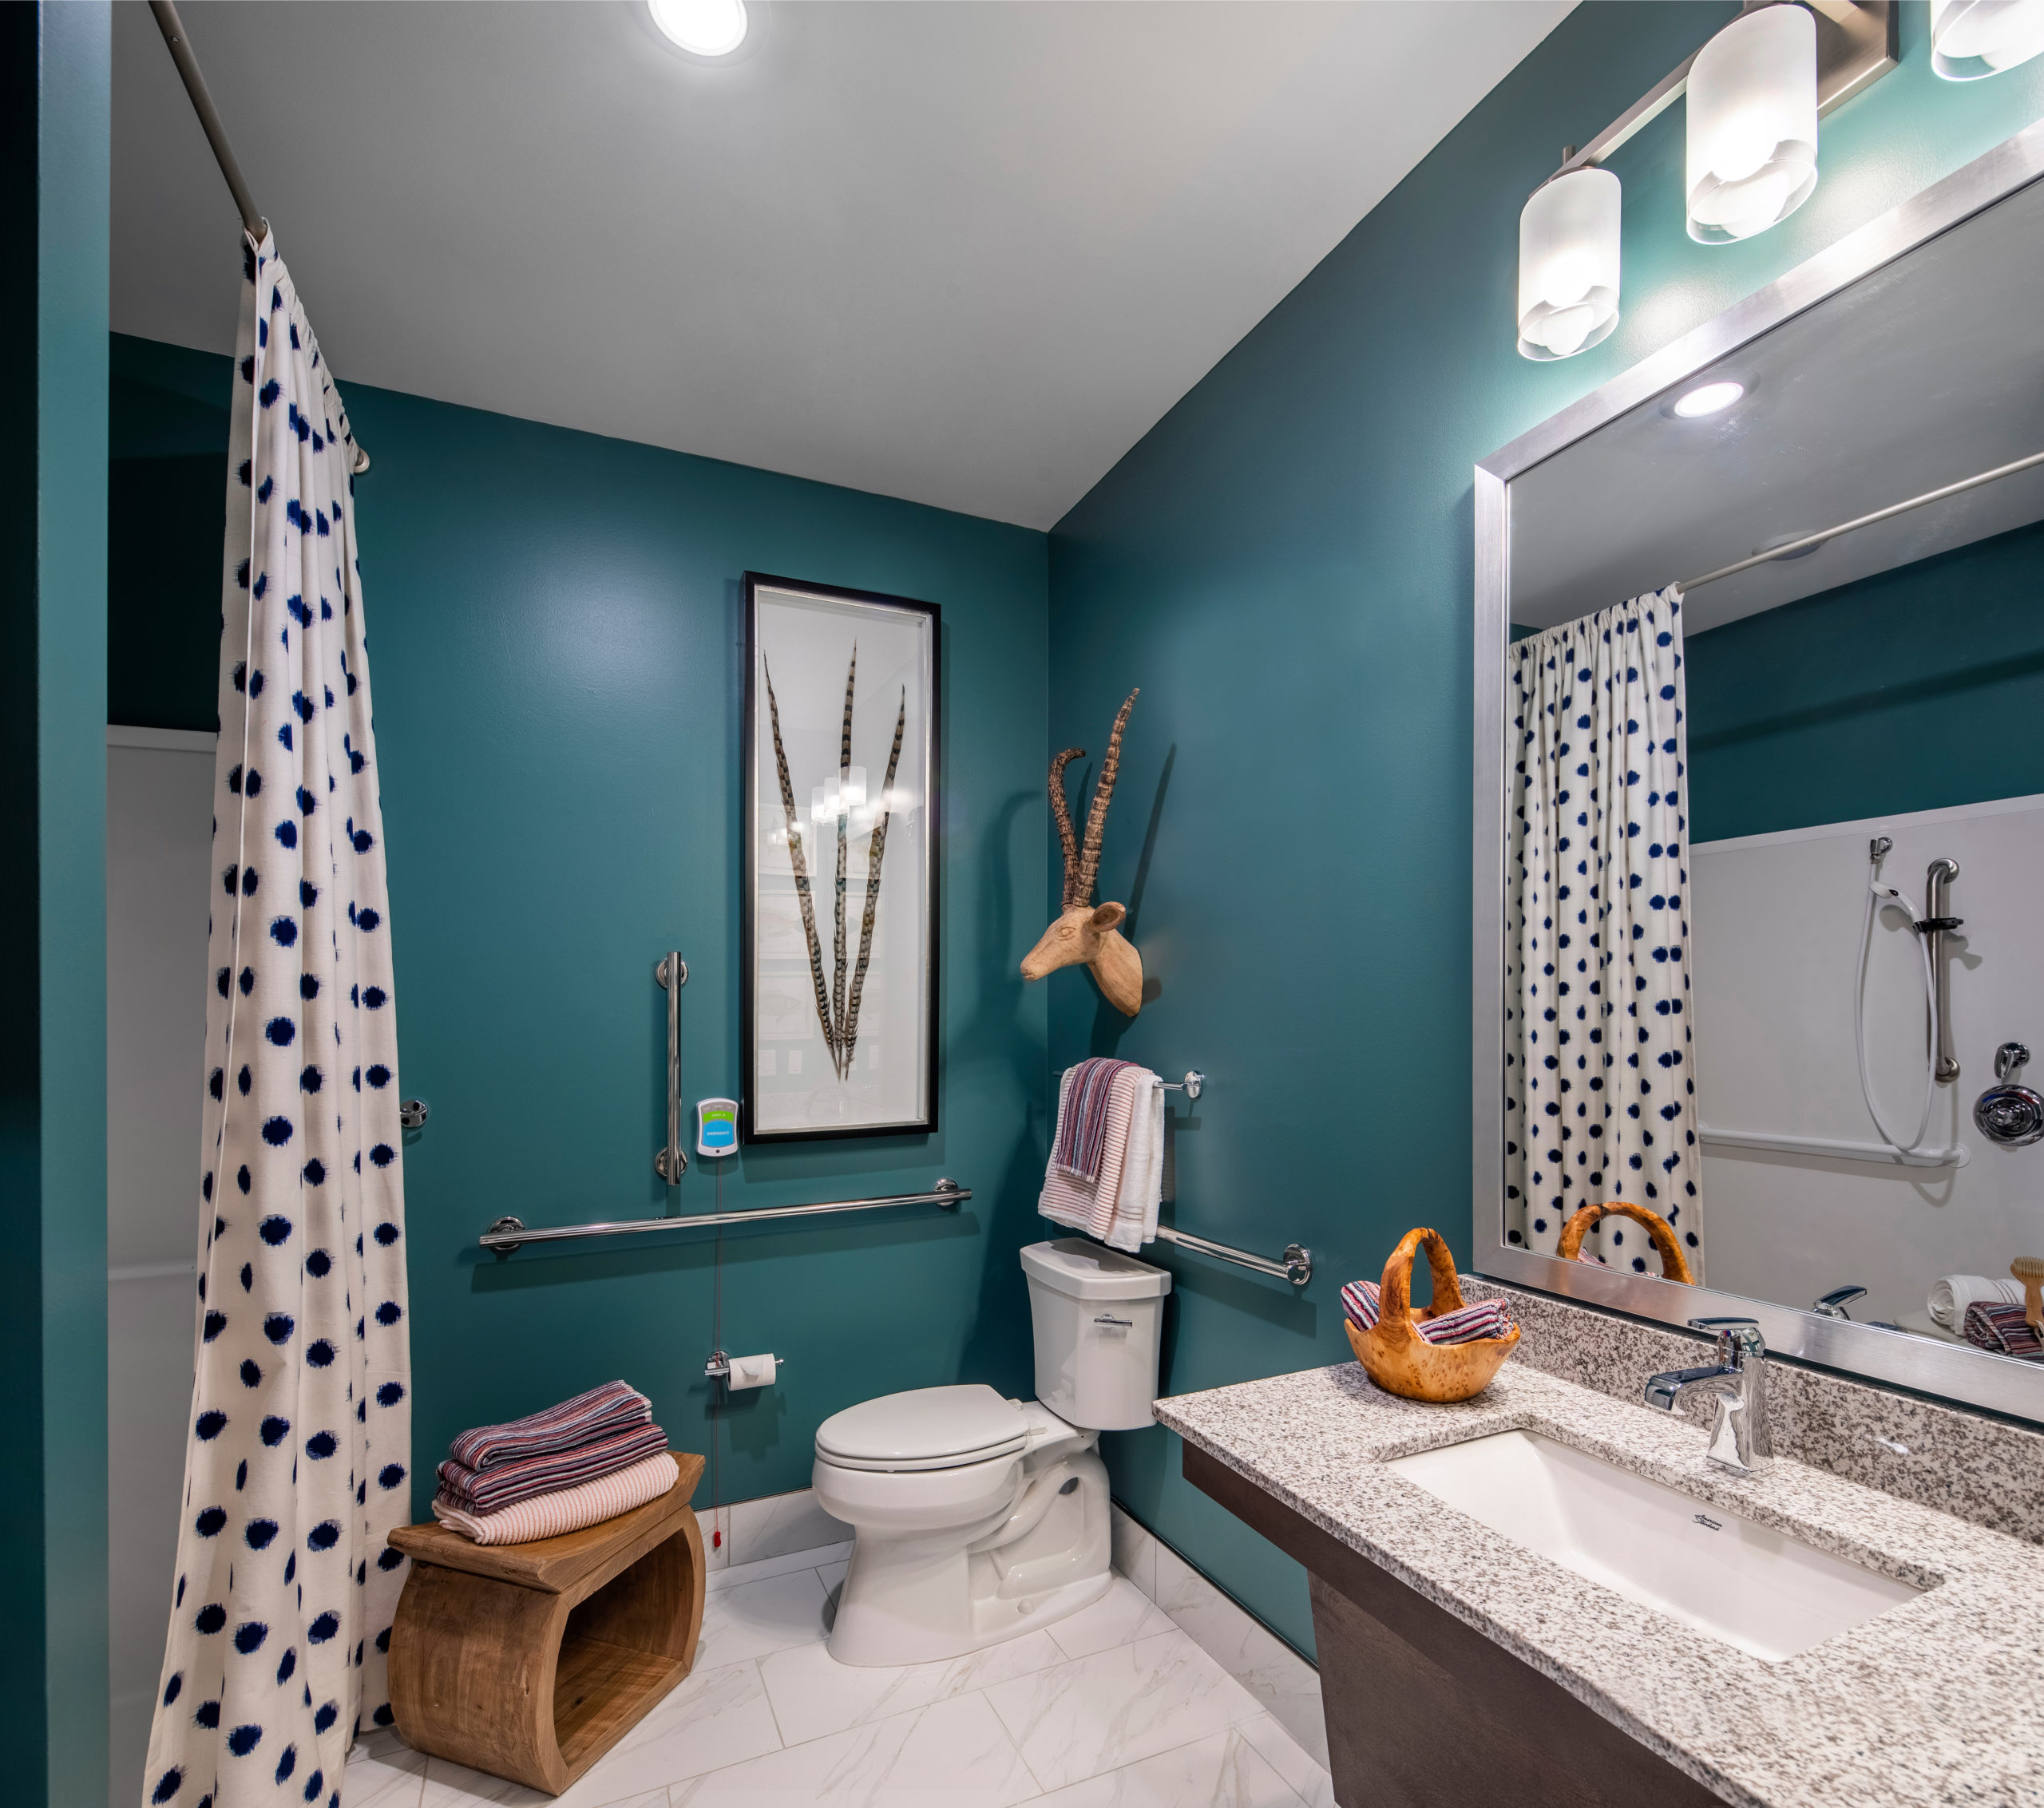 Teal bathroom with white polka dot curtains, granite vanity with sink in Longleaf memory care model apartment